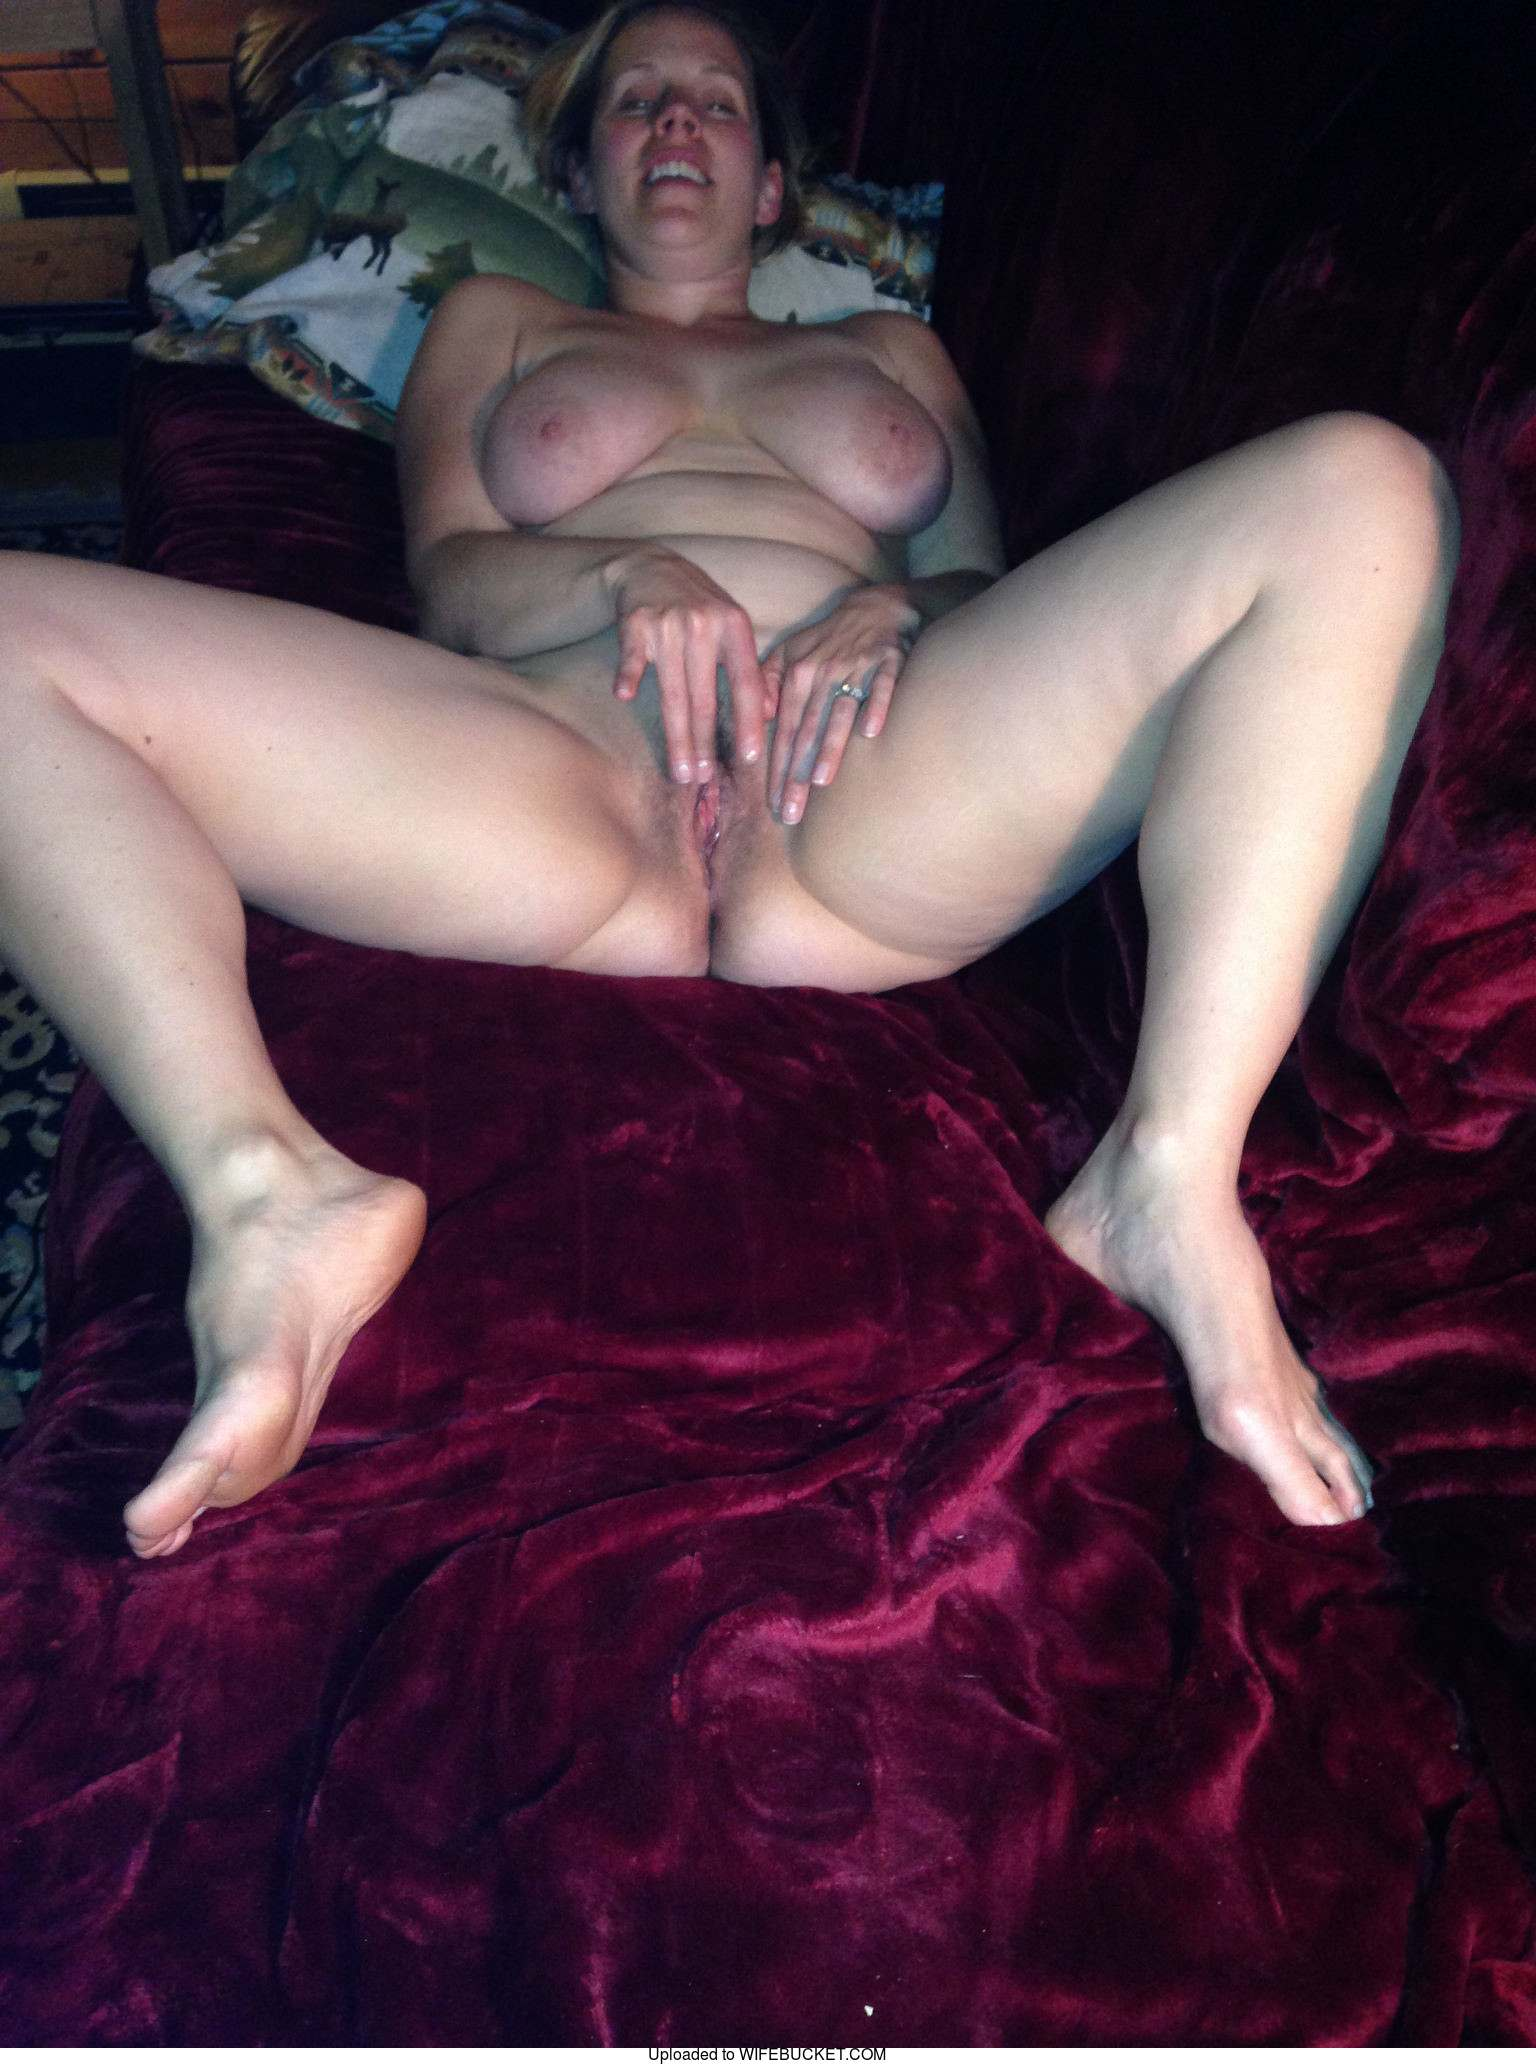 Married Milf Pics